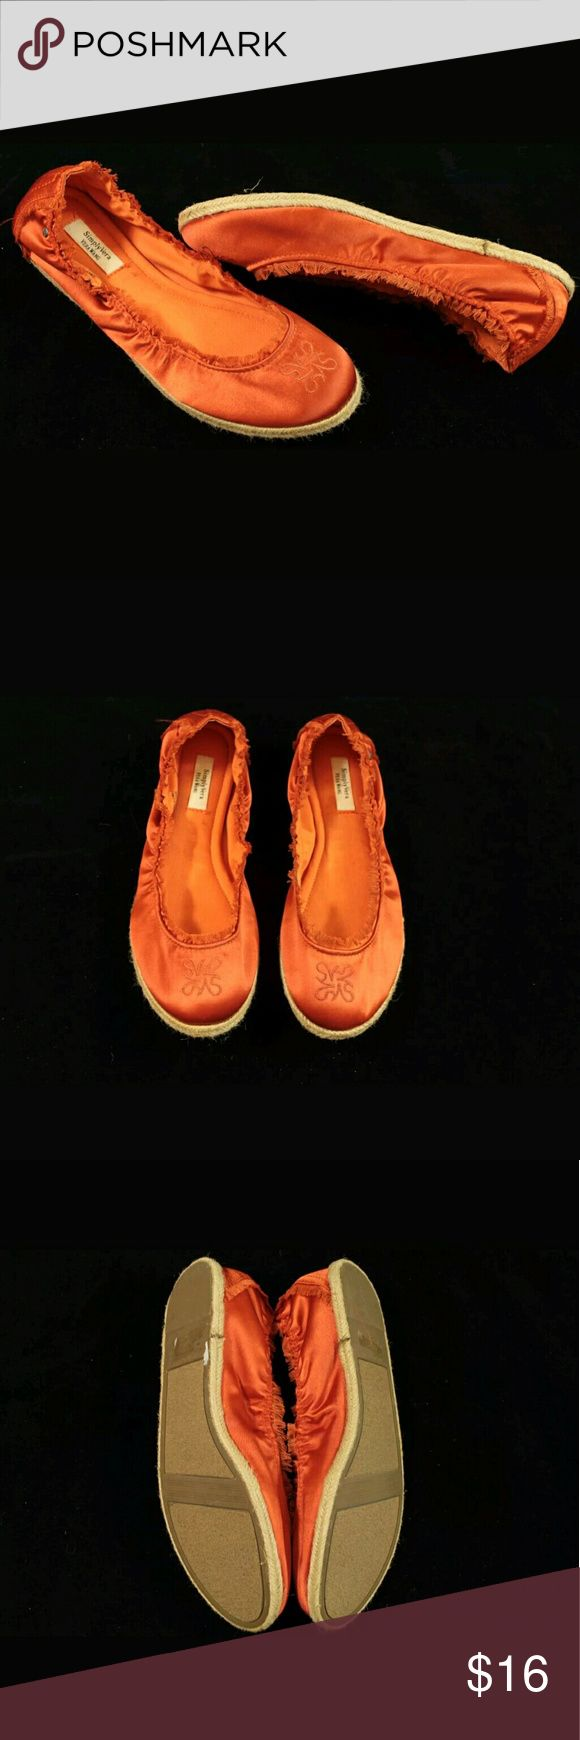 Simply Vera Wang Orange Slip On Ballet Flats Shoes Simply Vera Wang Orange Slip On Ballet Flats Shoes Womens Size 9.5 Medium  Condition:  Great Pre-Owned Condition from clean pet/smoke free home with light wear. See Pics. Simply Vera Vera Wang Shoes Flats & Loafers